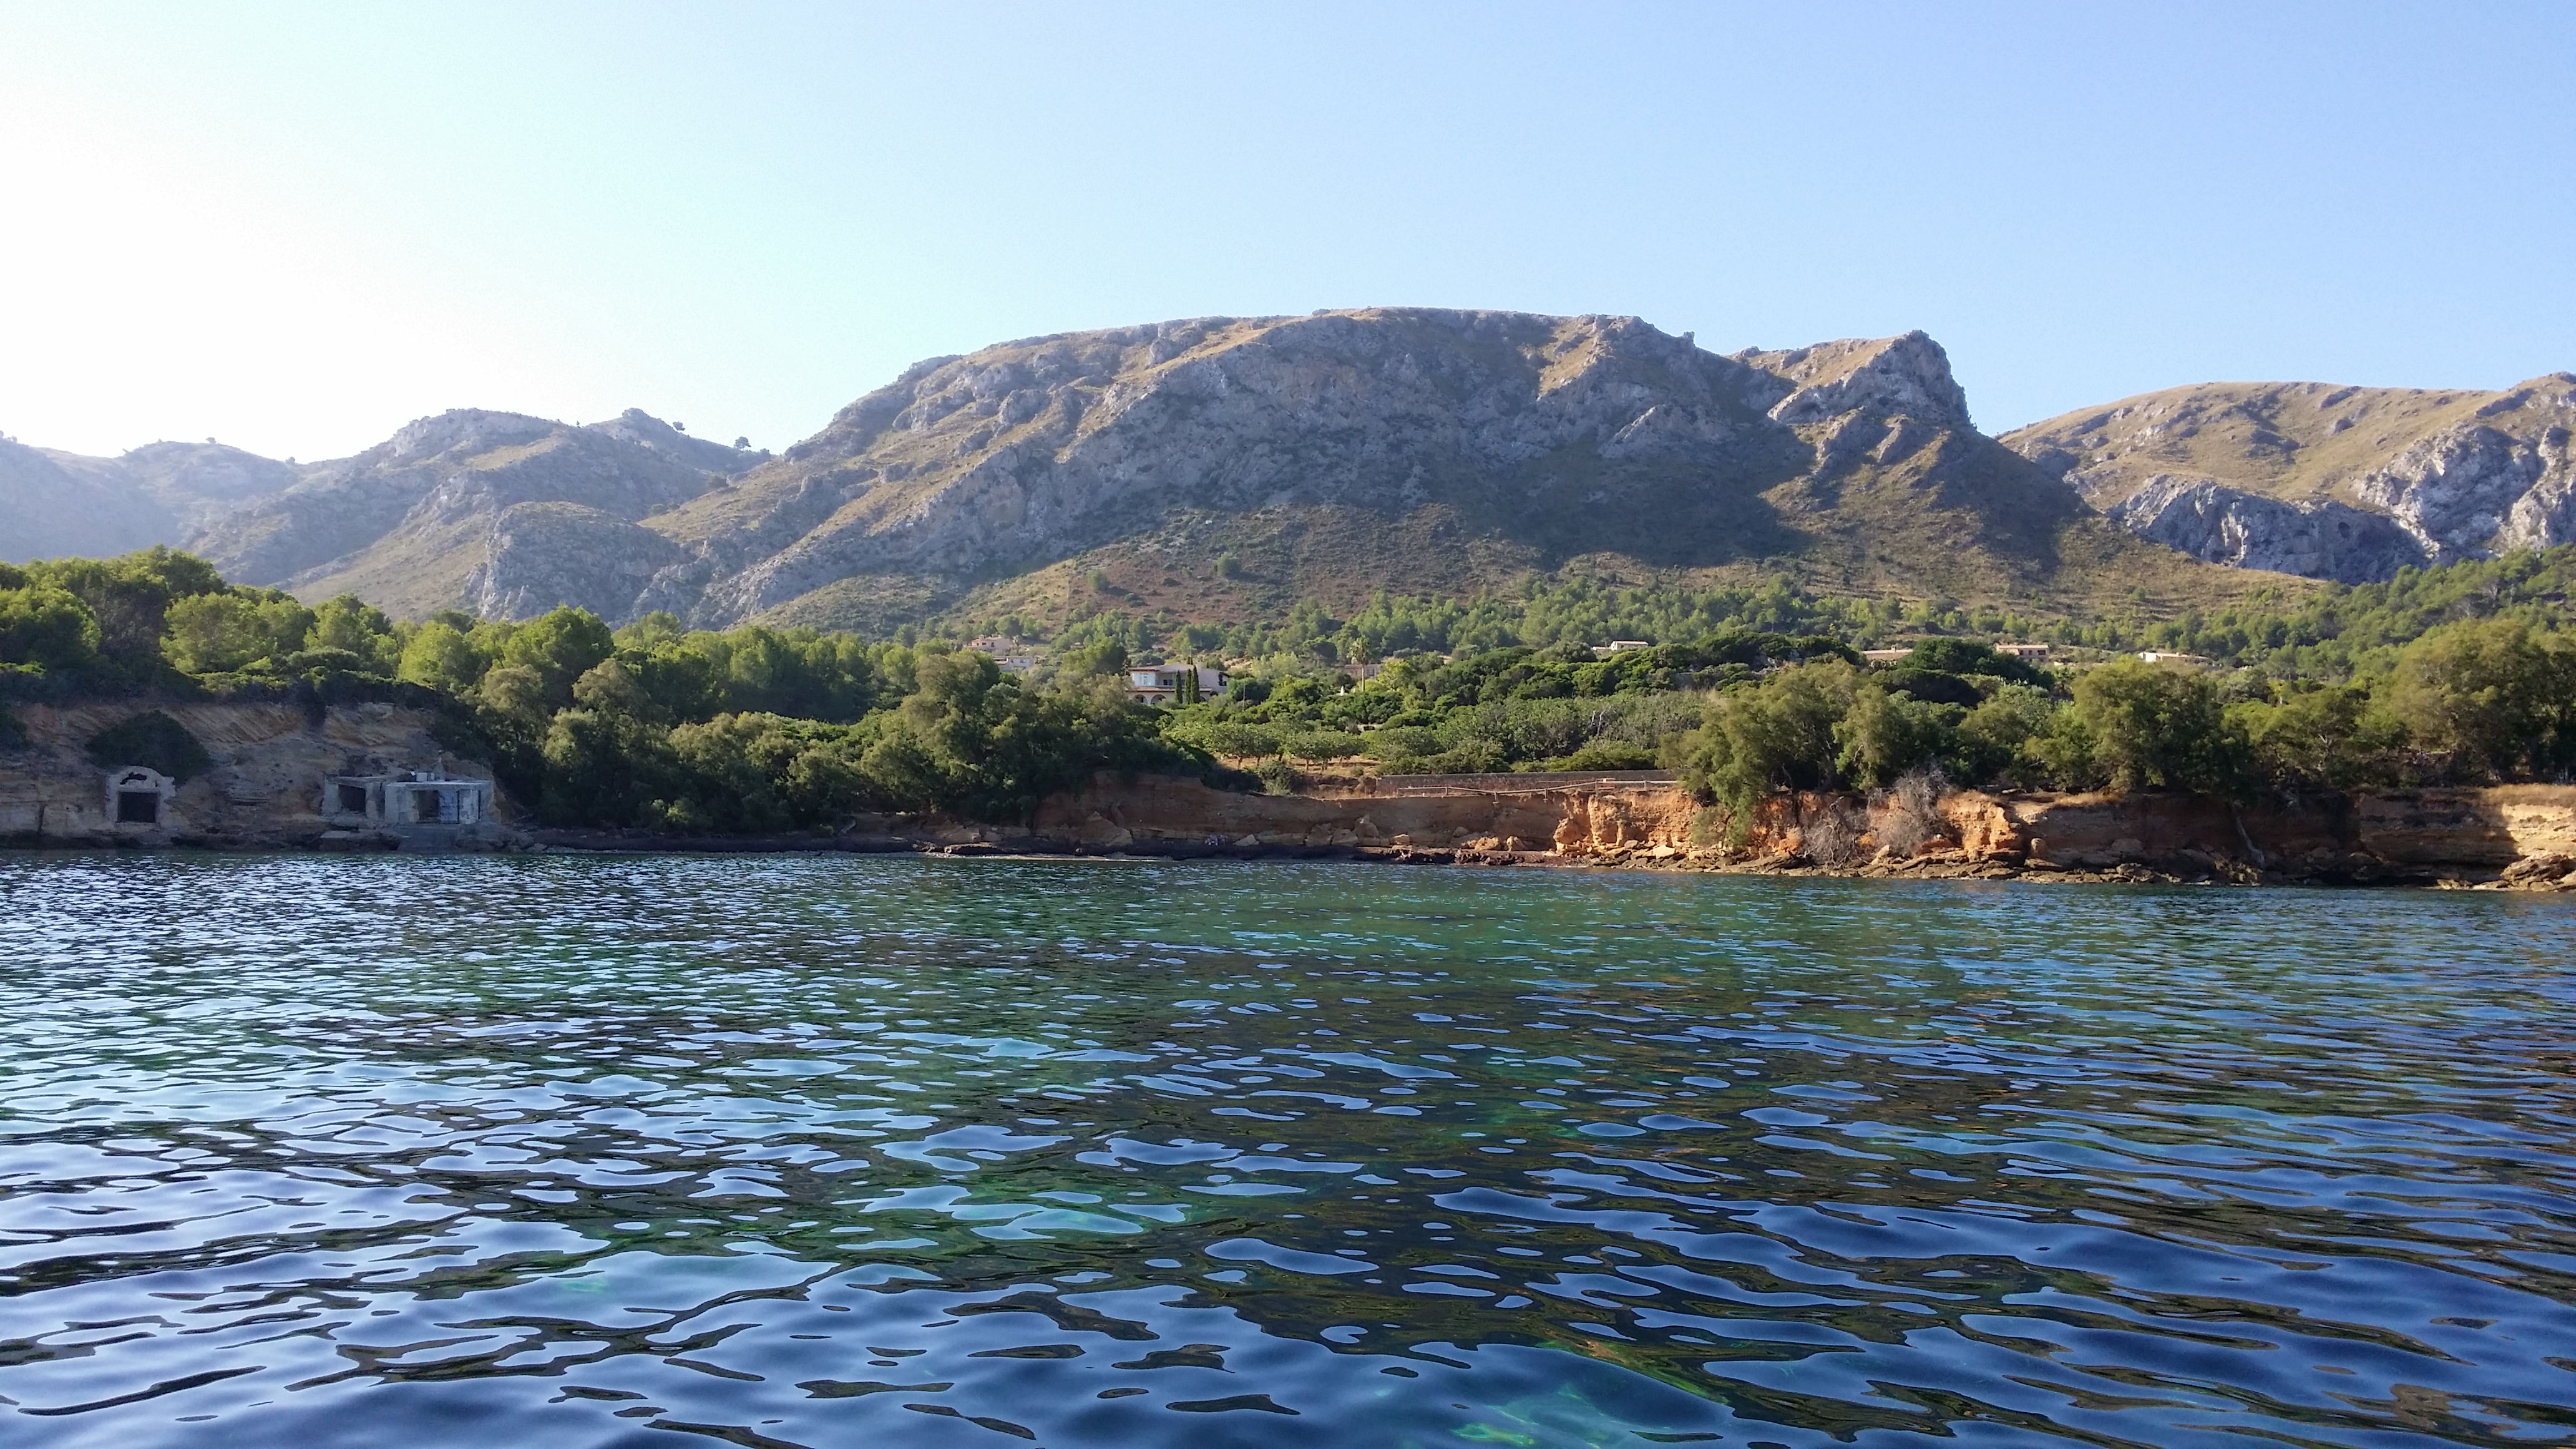 Die Finca vom Boot aus / the finca from the boat